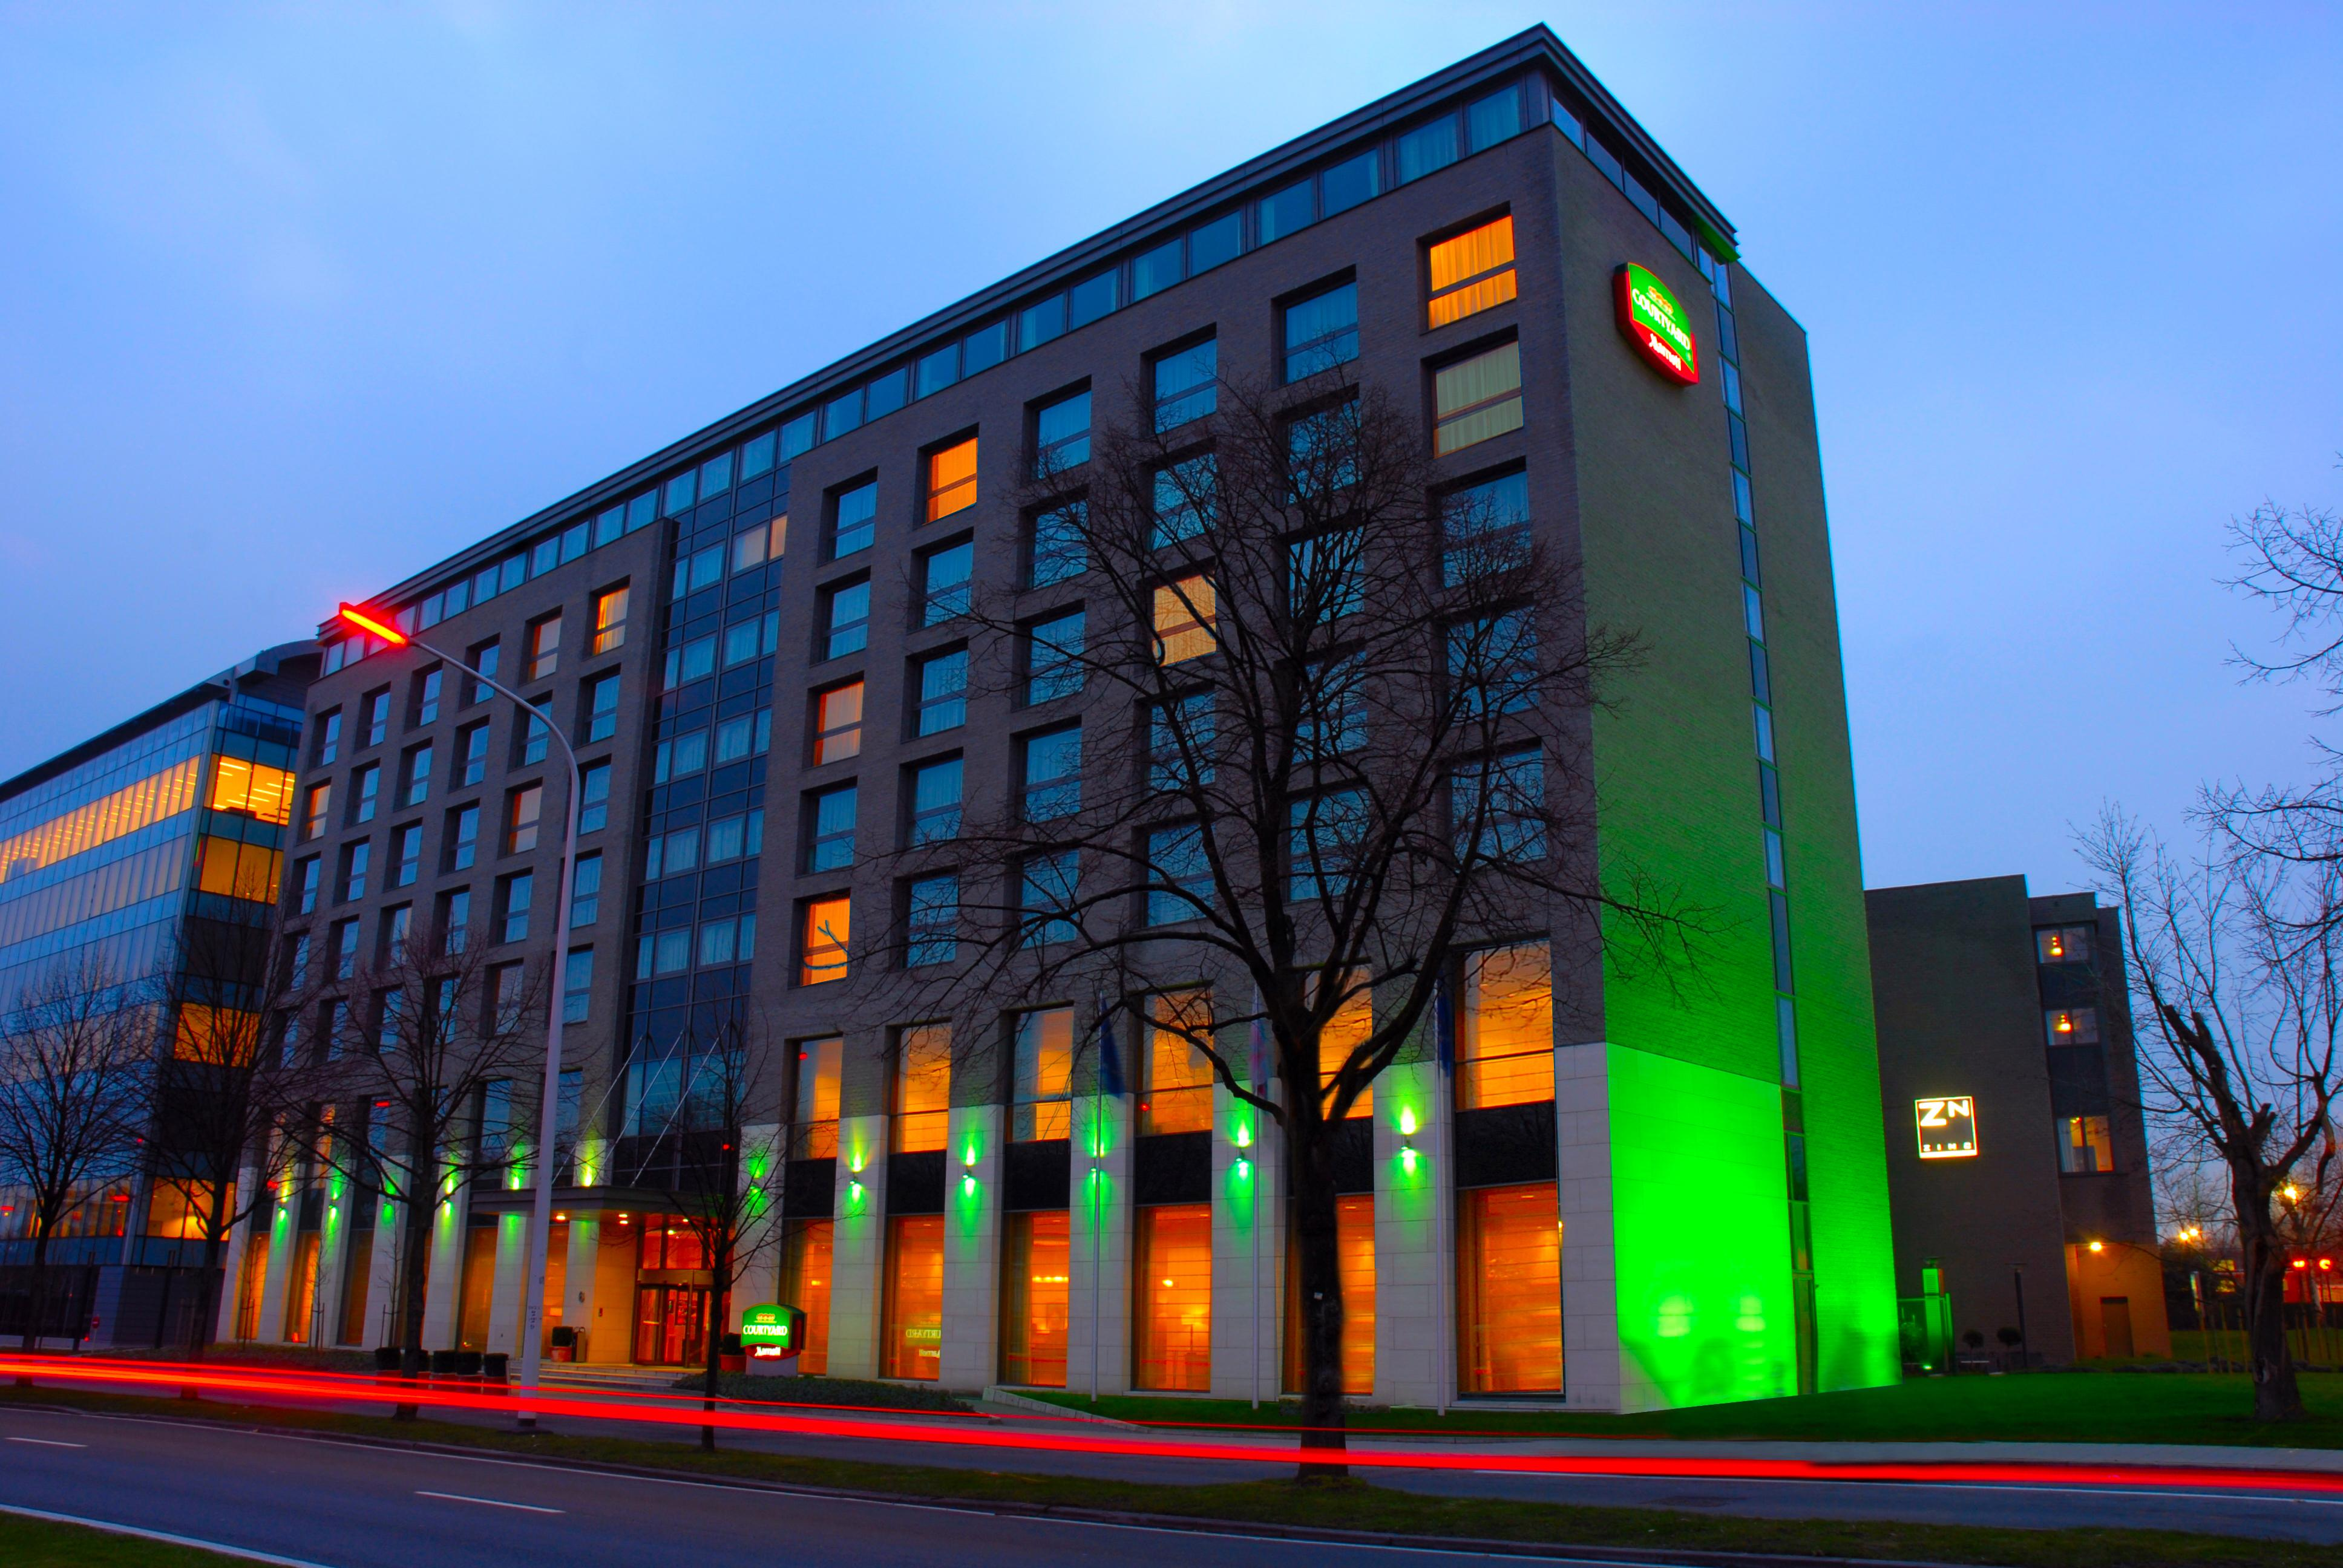 Courtyard by marriott brussels visitflanders for Hotel moderne belgique